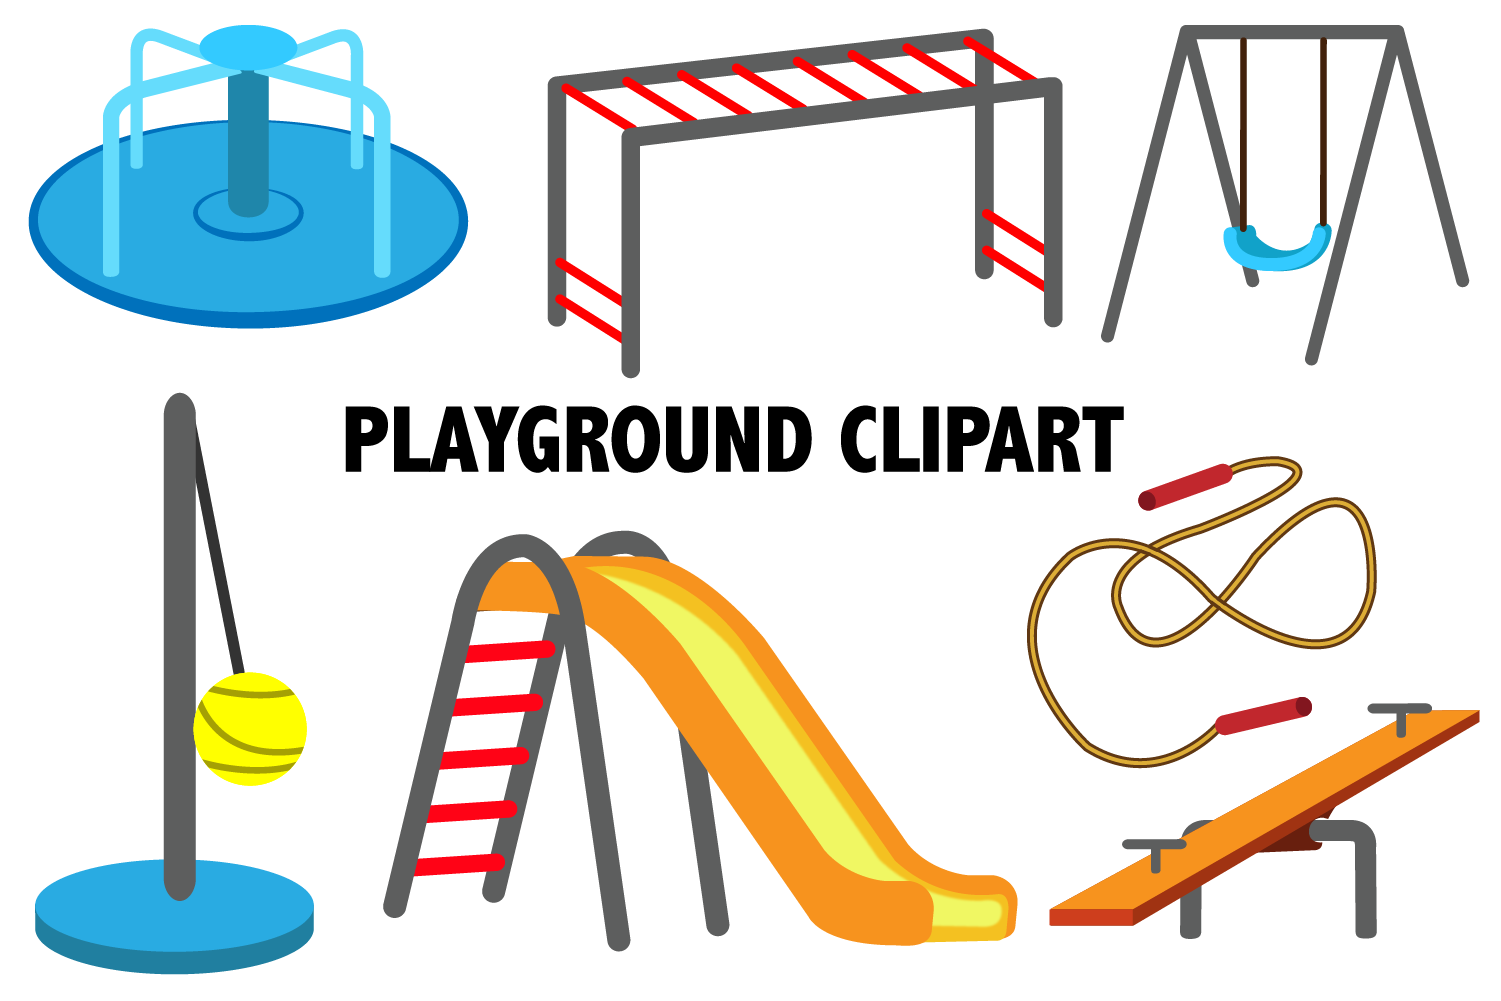 Playground Clipart example image 1